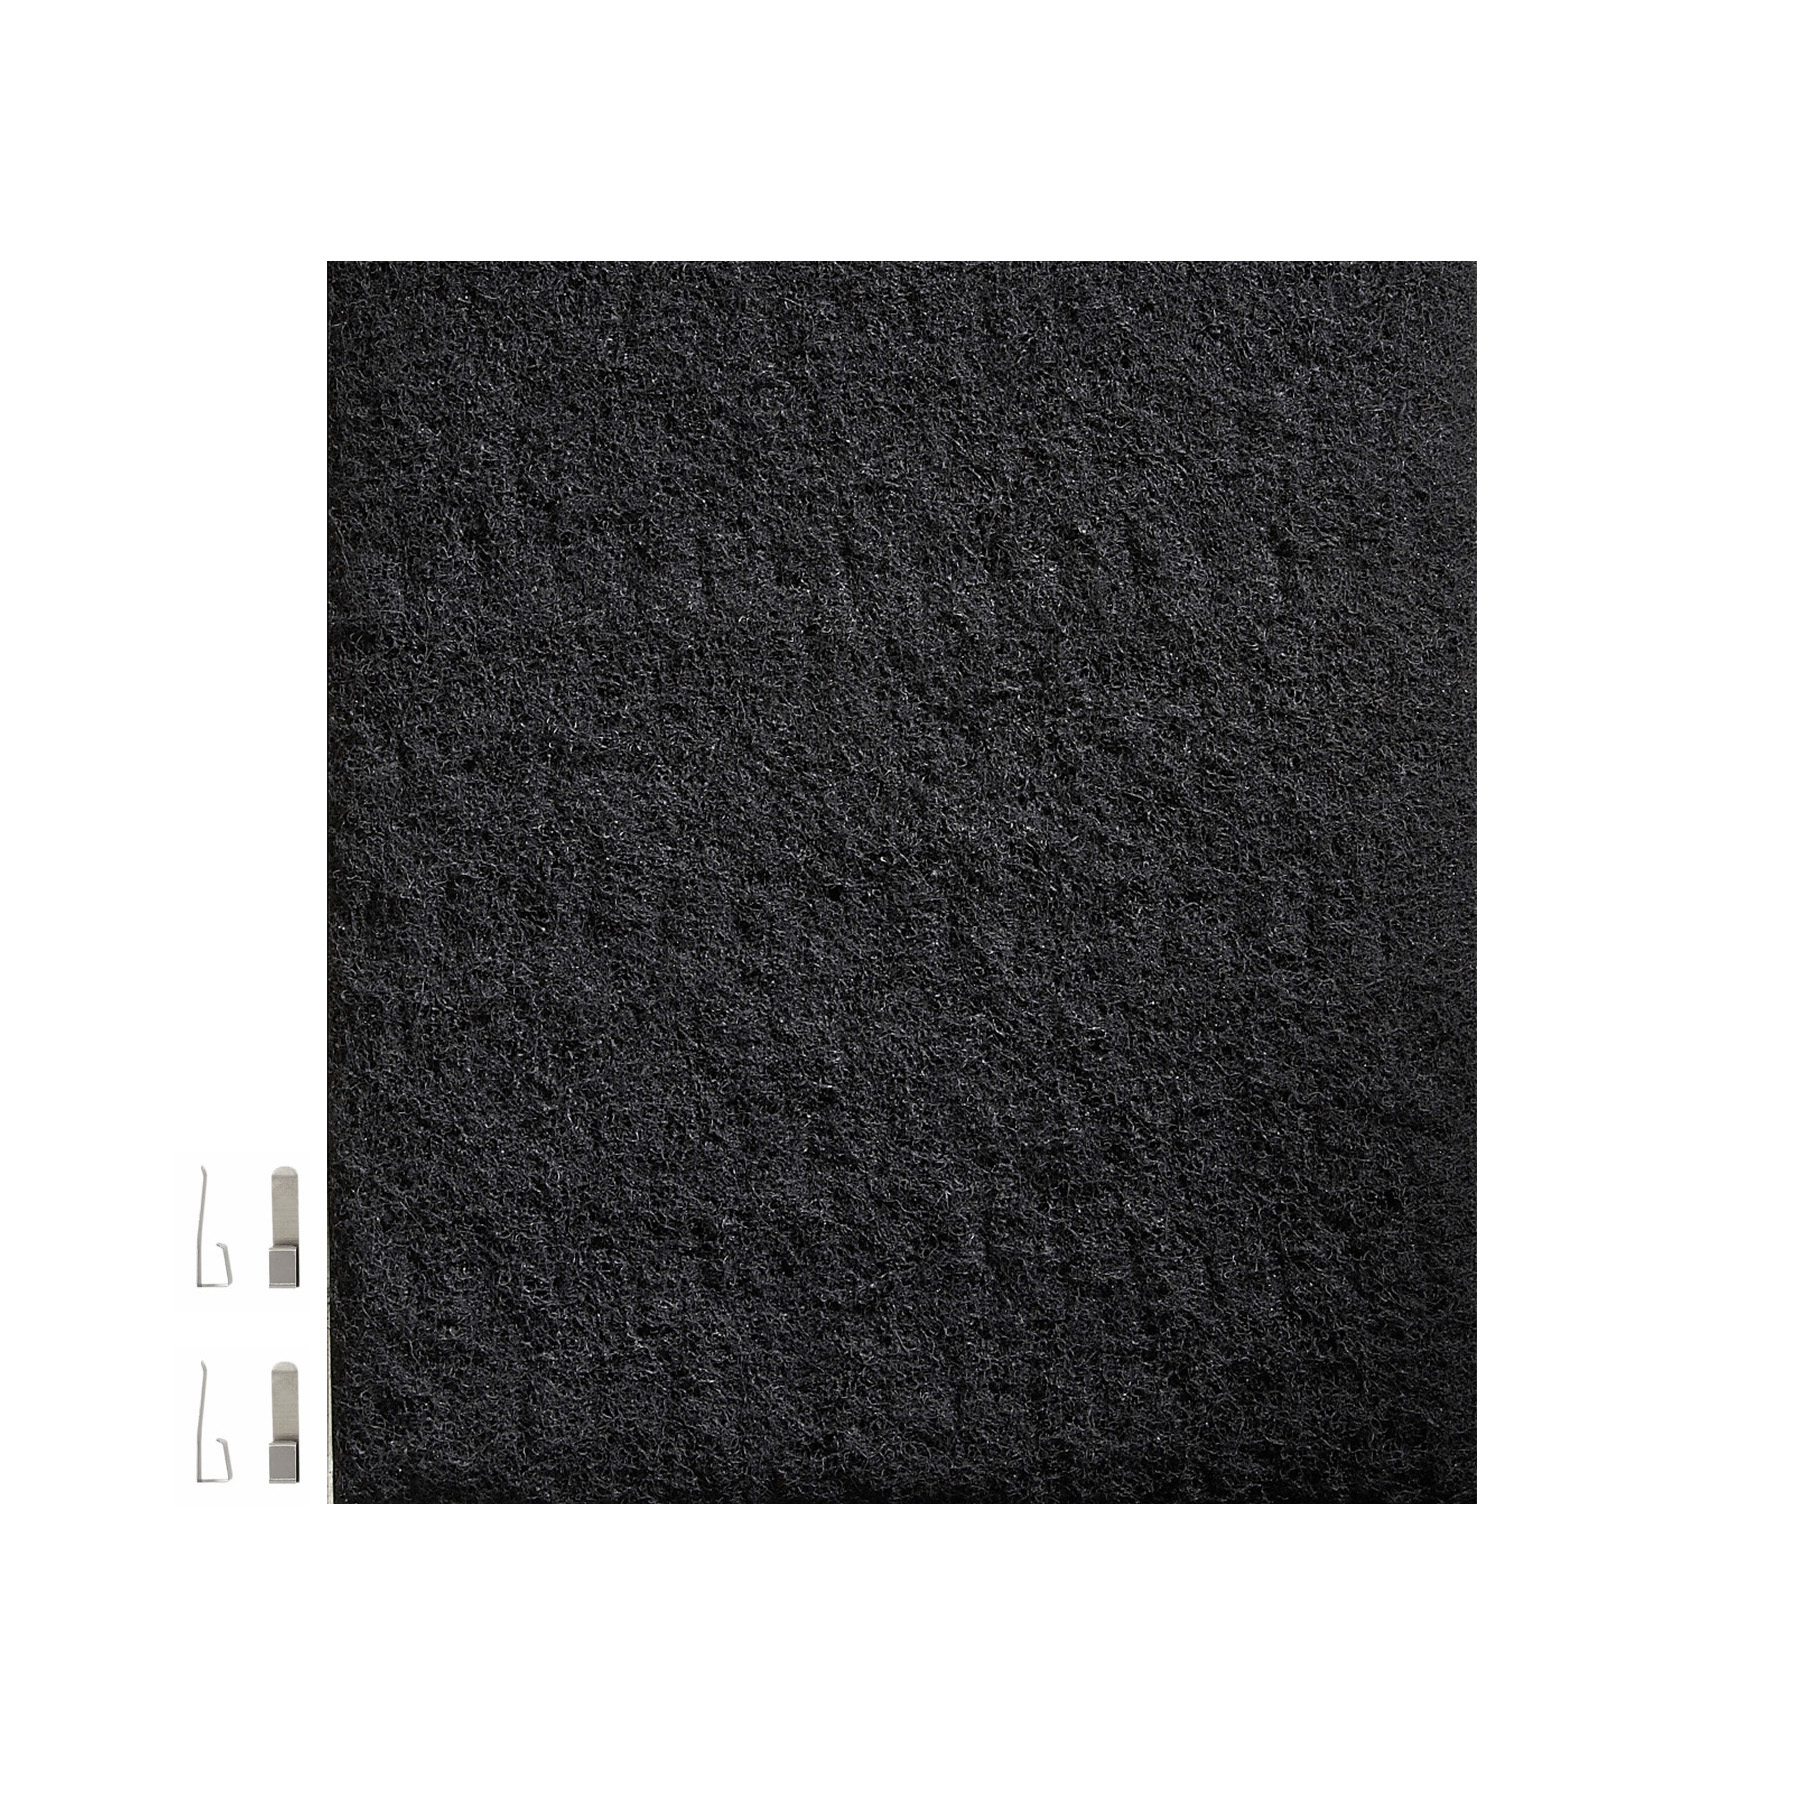 "Charcoal Replacement Filter for Broan BXT1 Series Range Hood 10.875"" x 10.5"" x 0.125"""